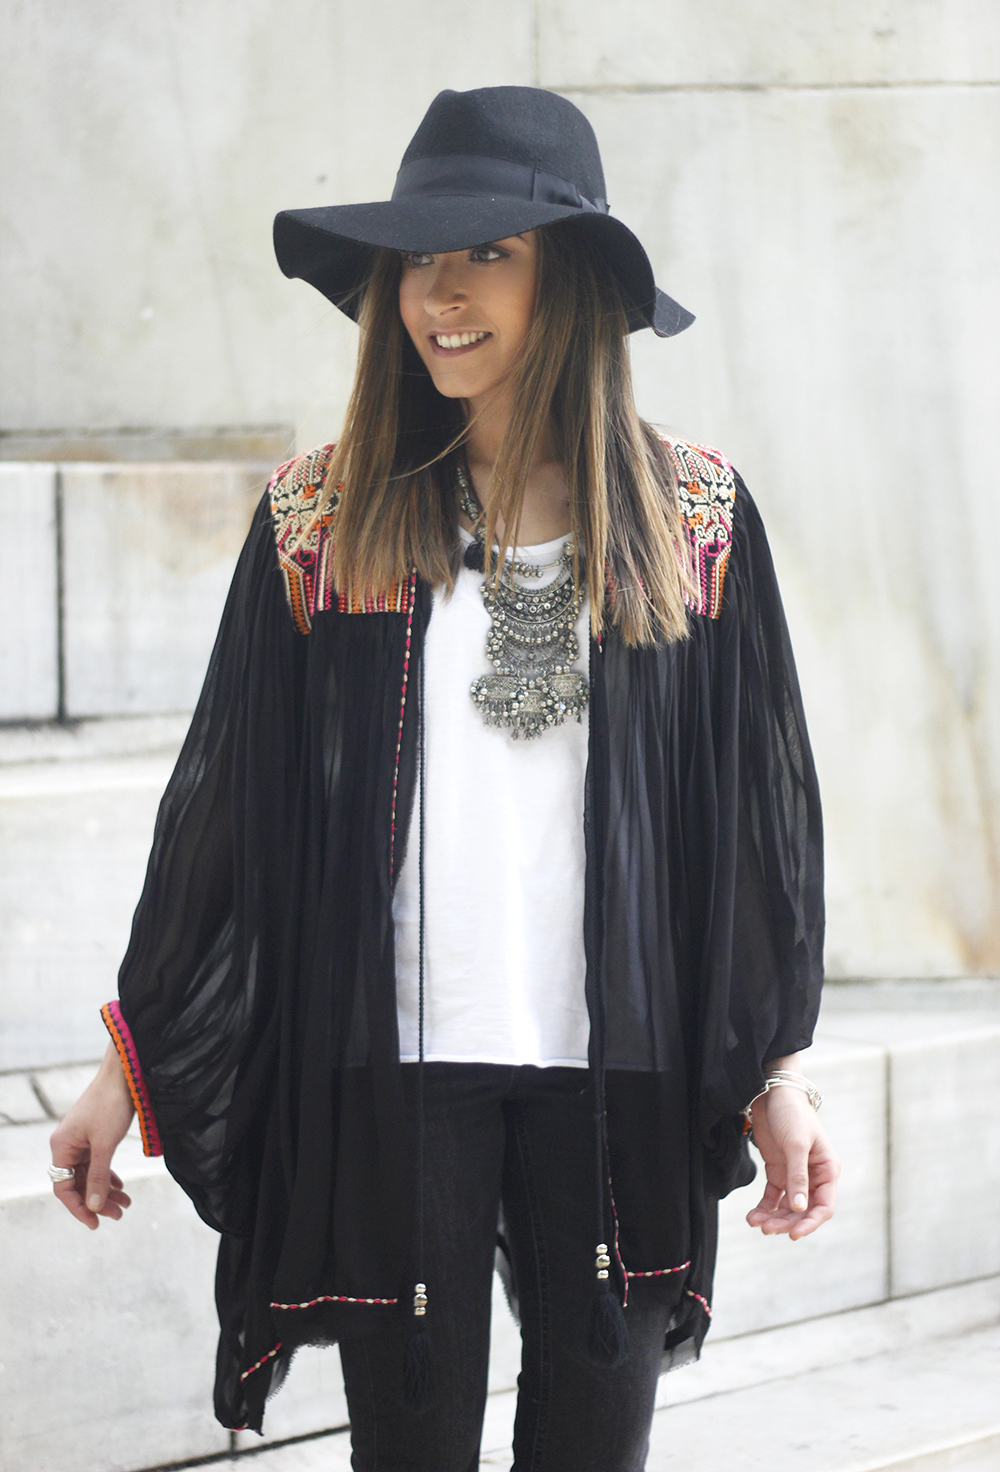 embroidered kimono flared jeans Hat Heels outfit style17